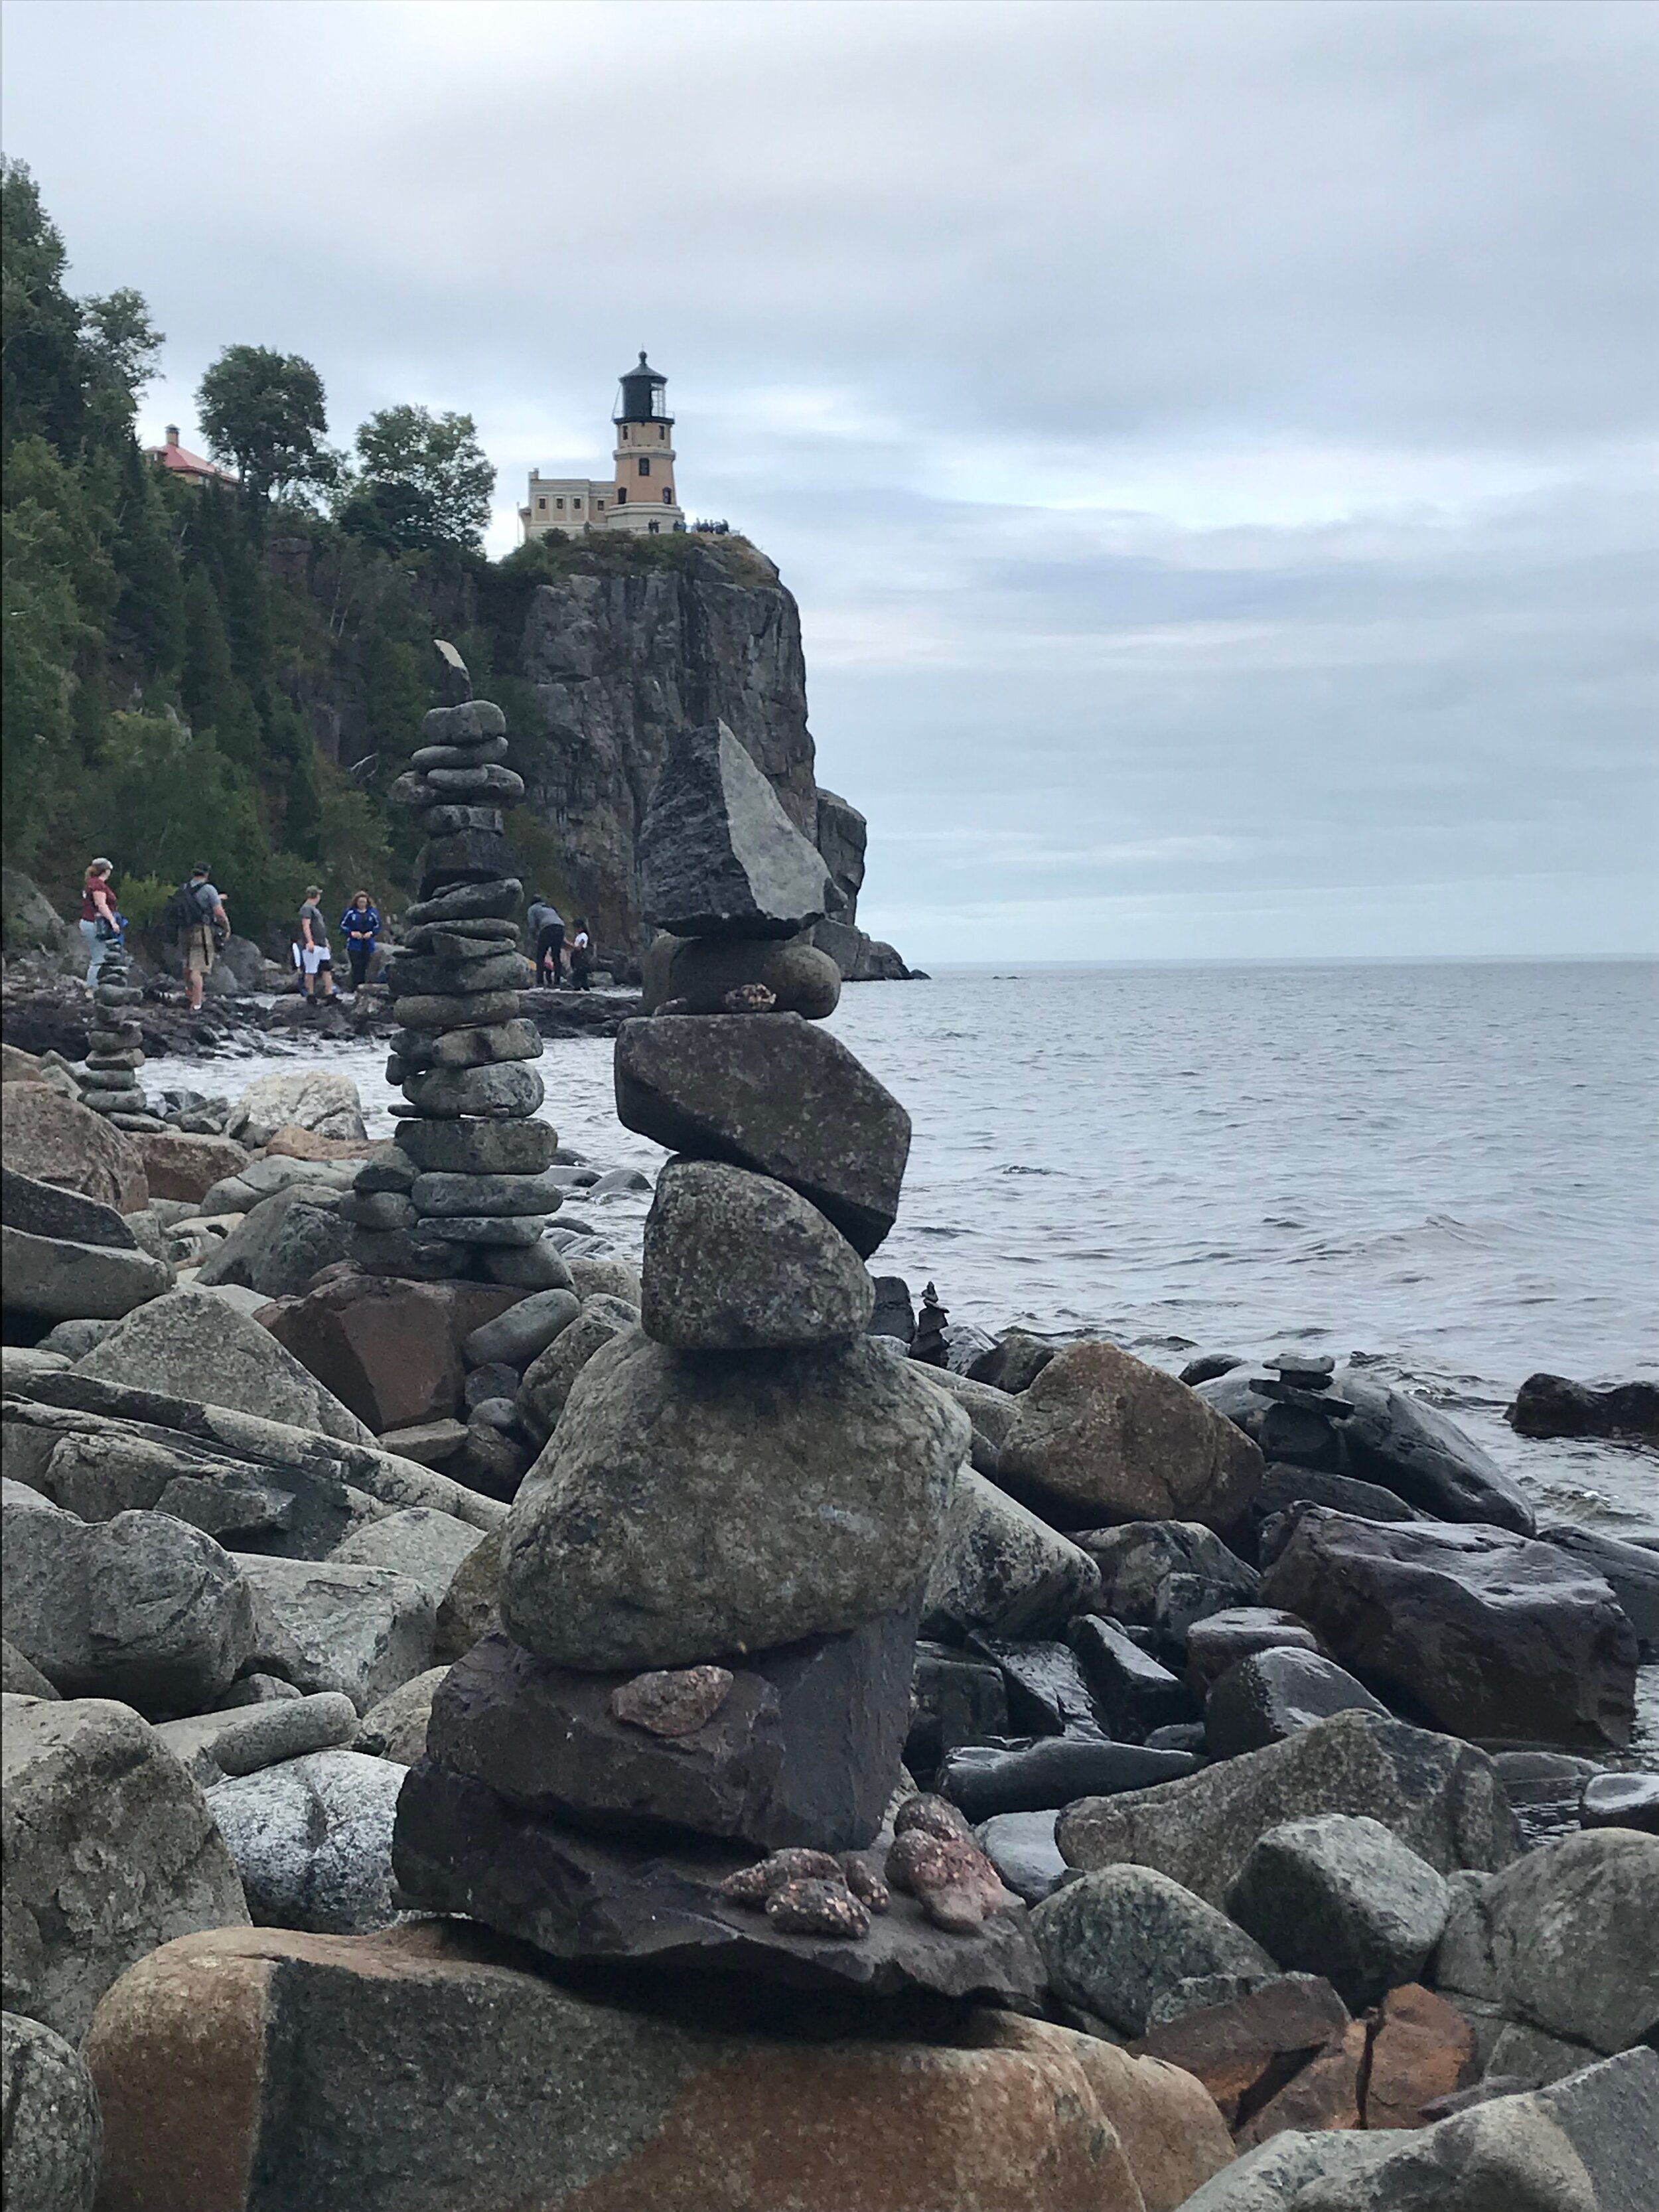 Cairns on the beach near Split Rock Lighthouse. Photo by Heidi Stang